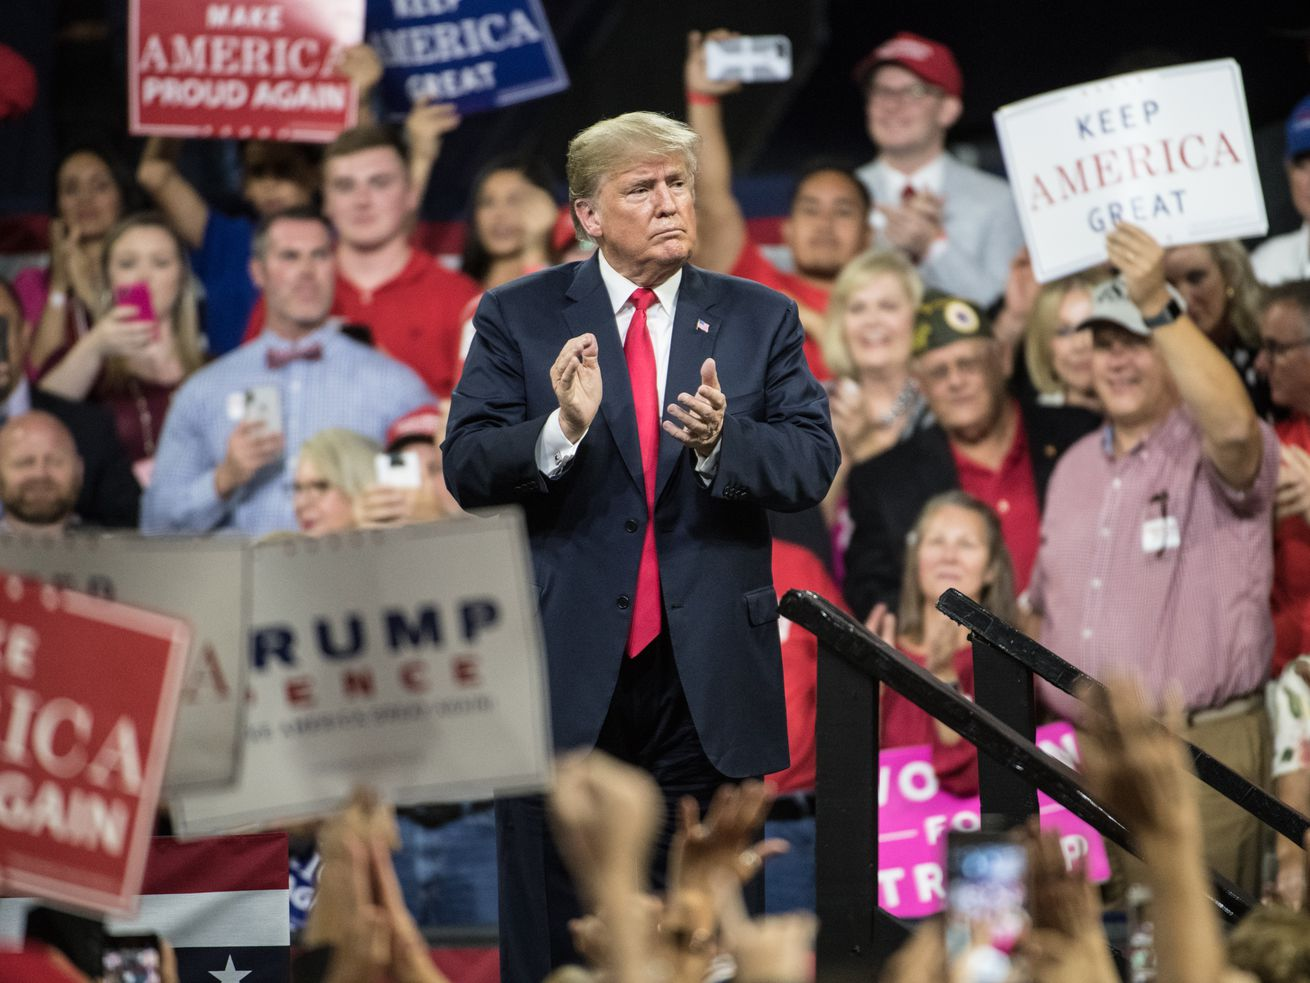 President Donald Trump at a rally on Monday in Tennessee.